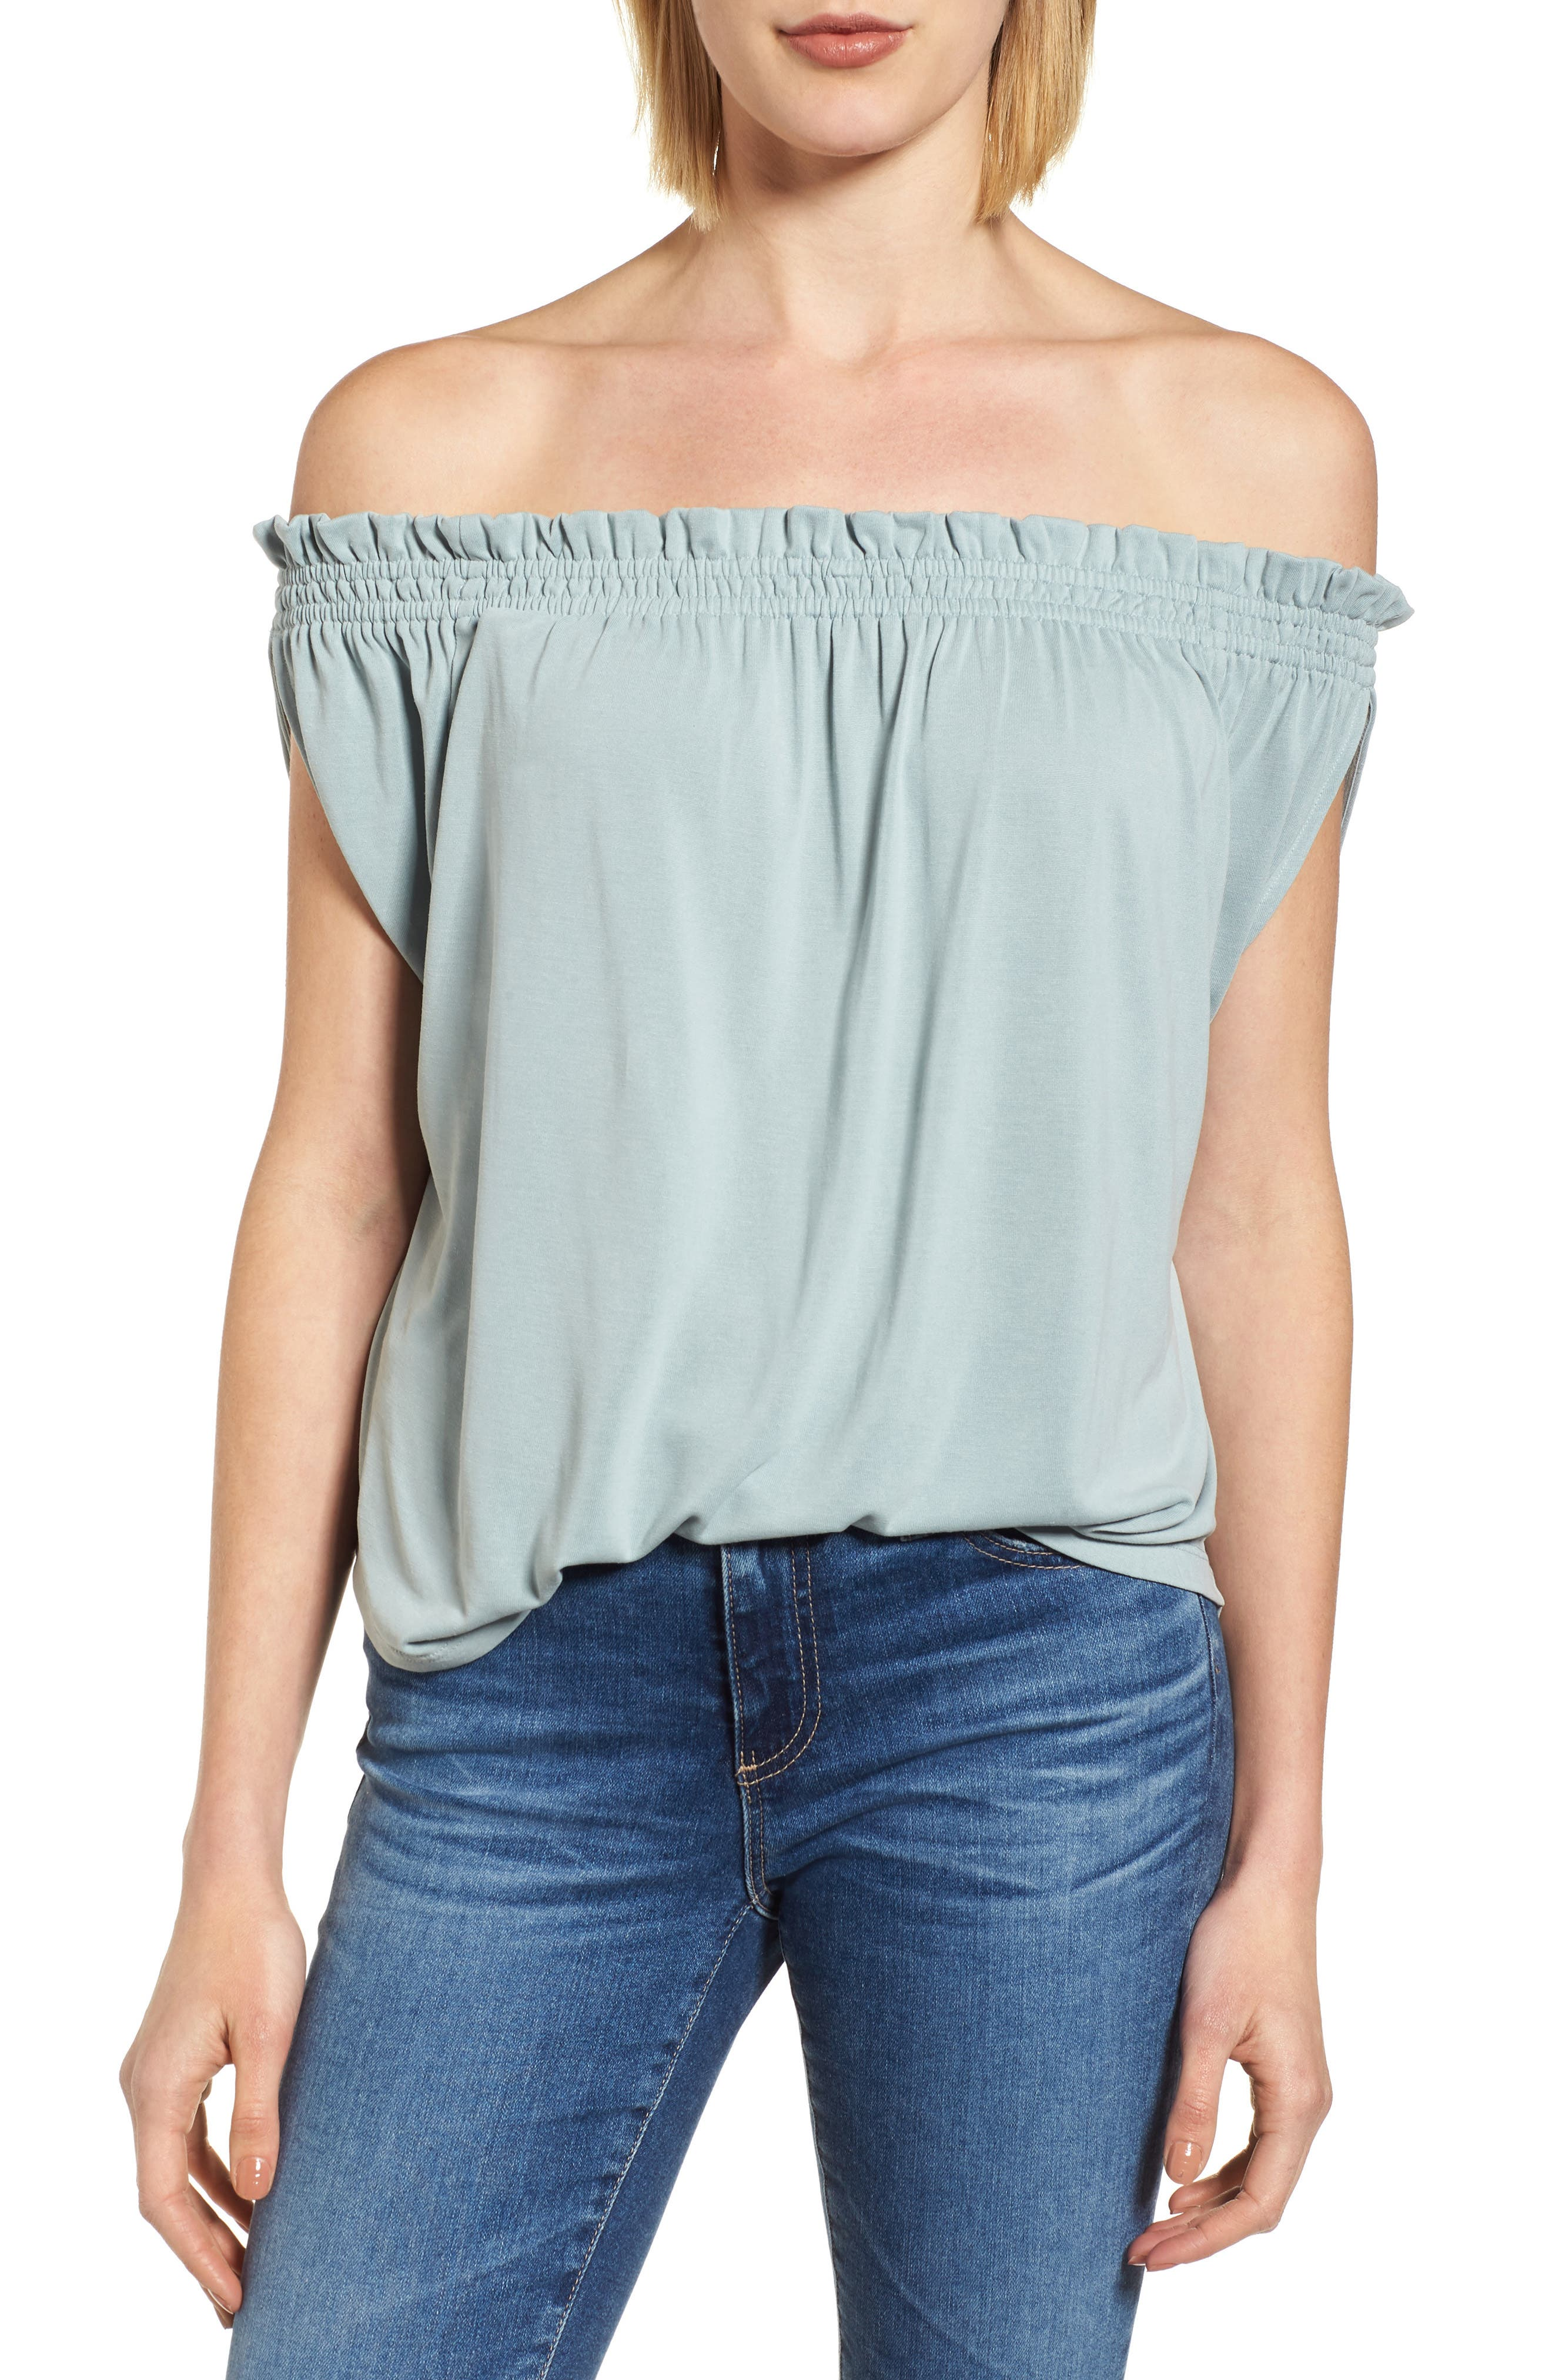 Off the Shoulder Top,                             Main thumbnail 1, color,                             310